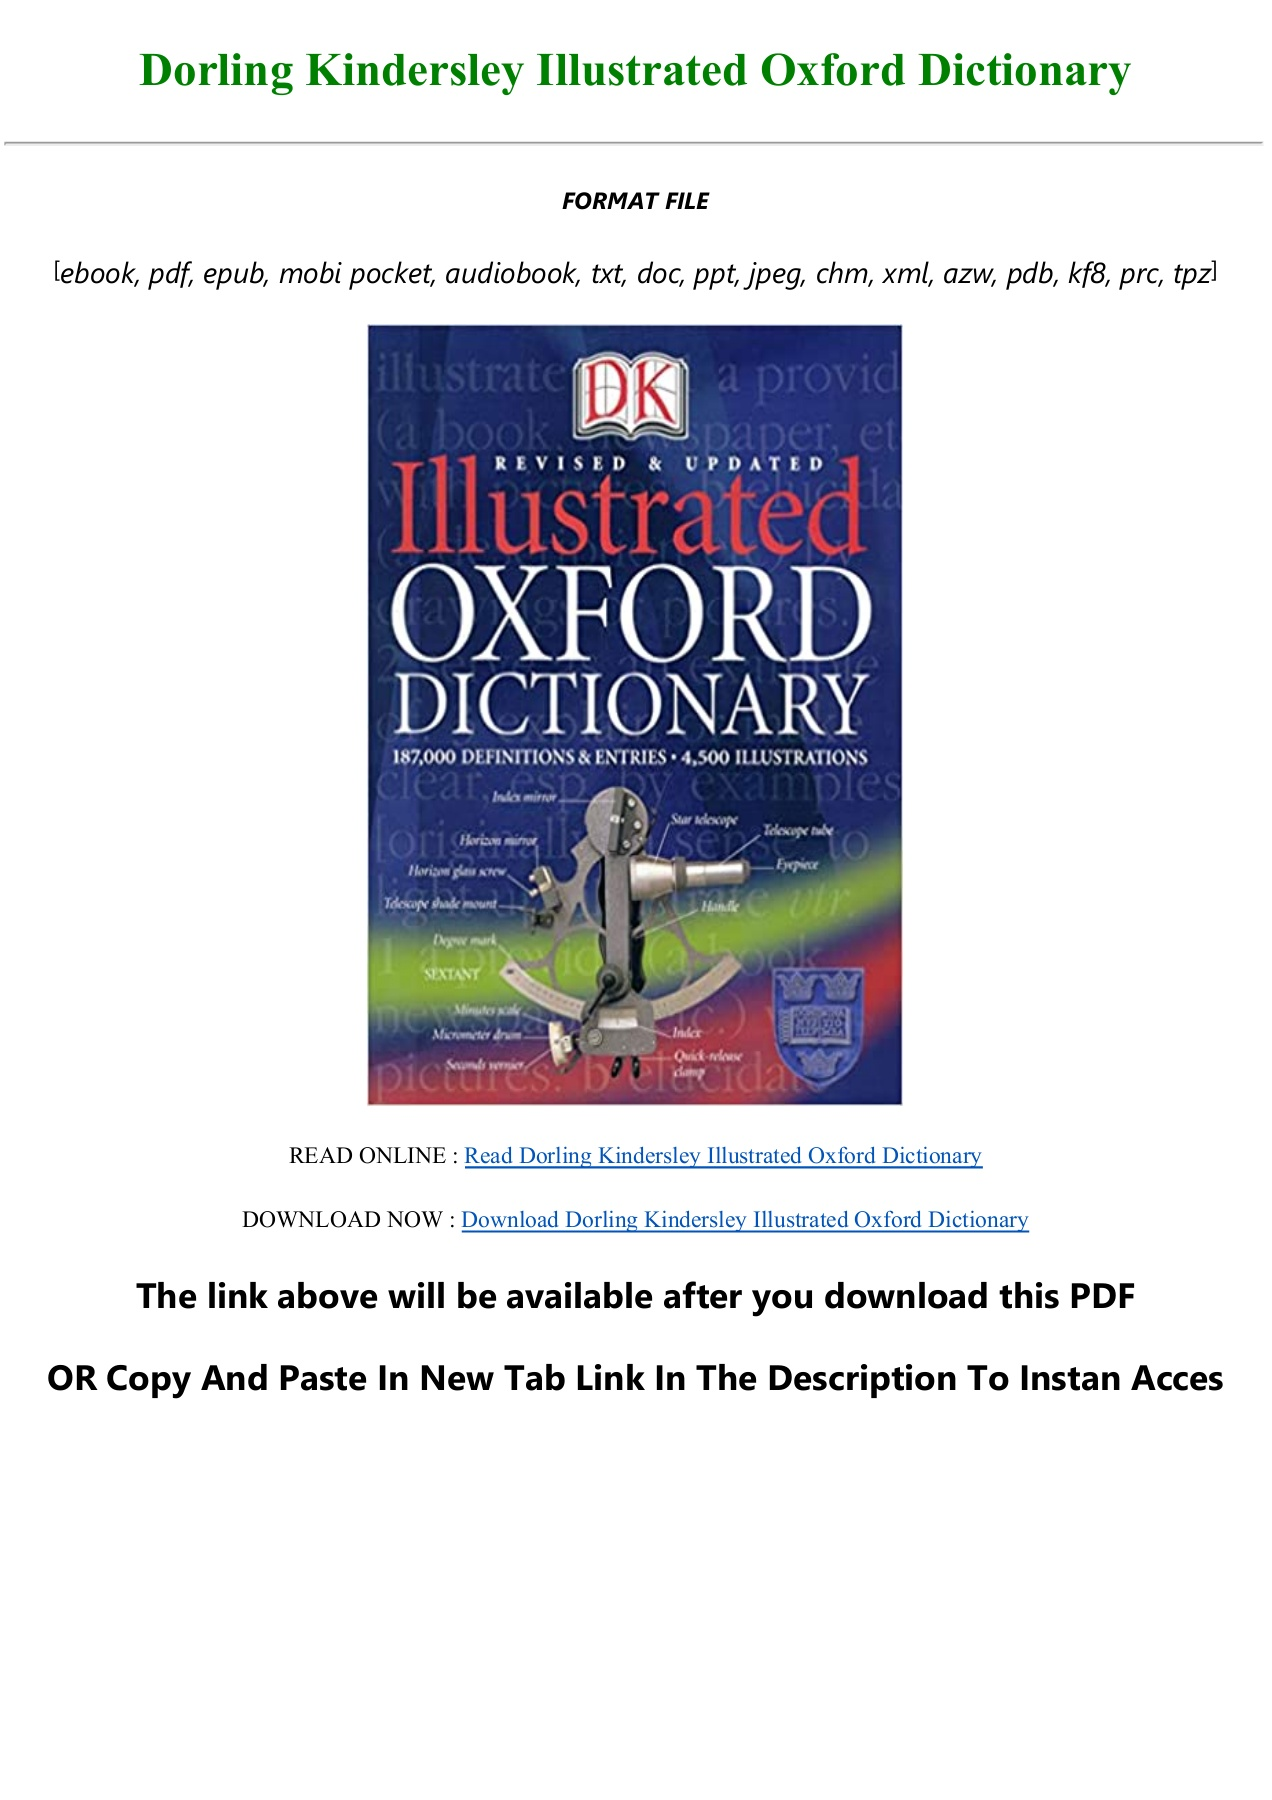 Read Book [PDF] Dorling Kindersley Illustrated Oxford Dictionary ...